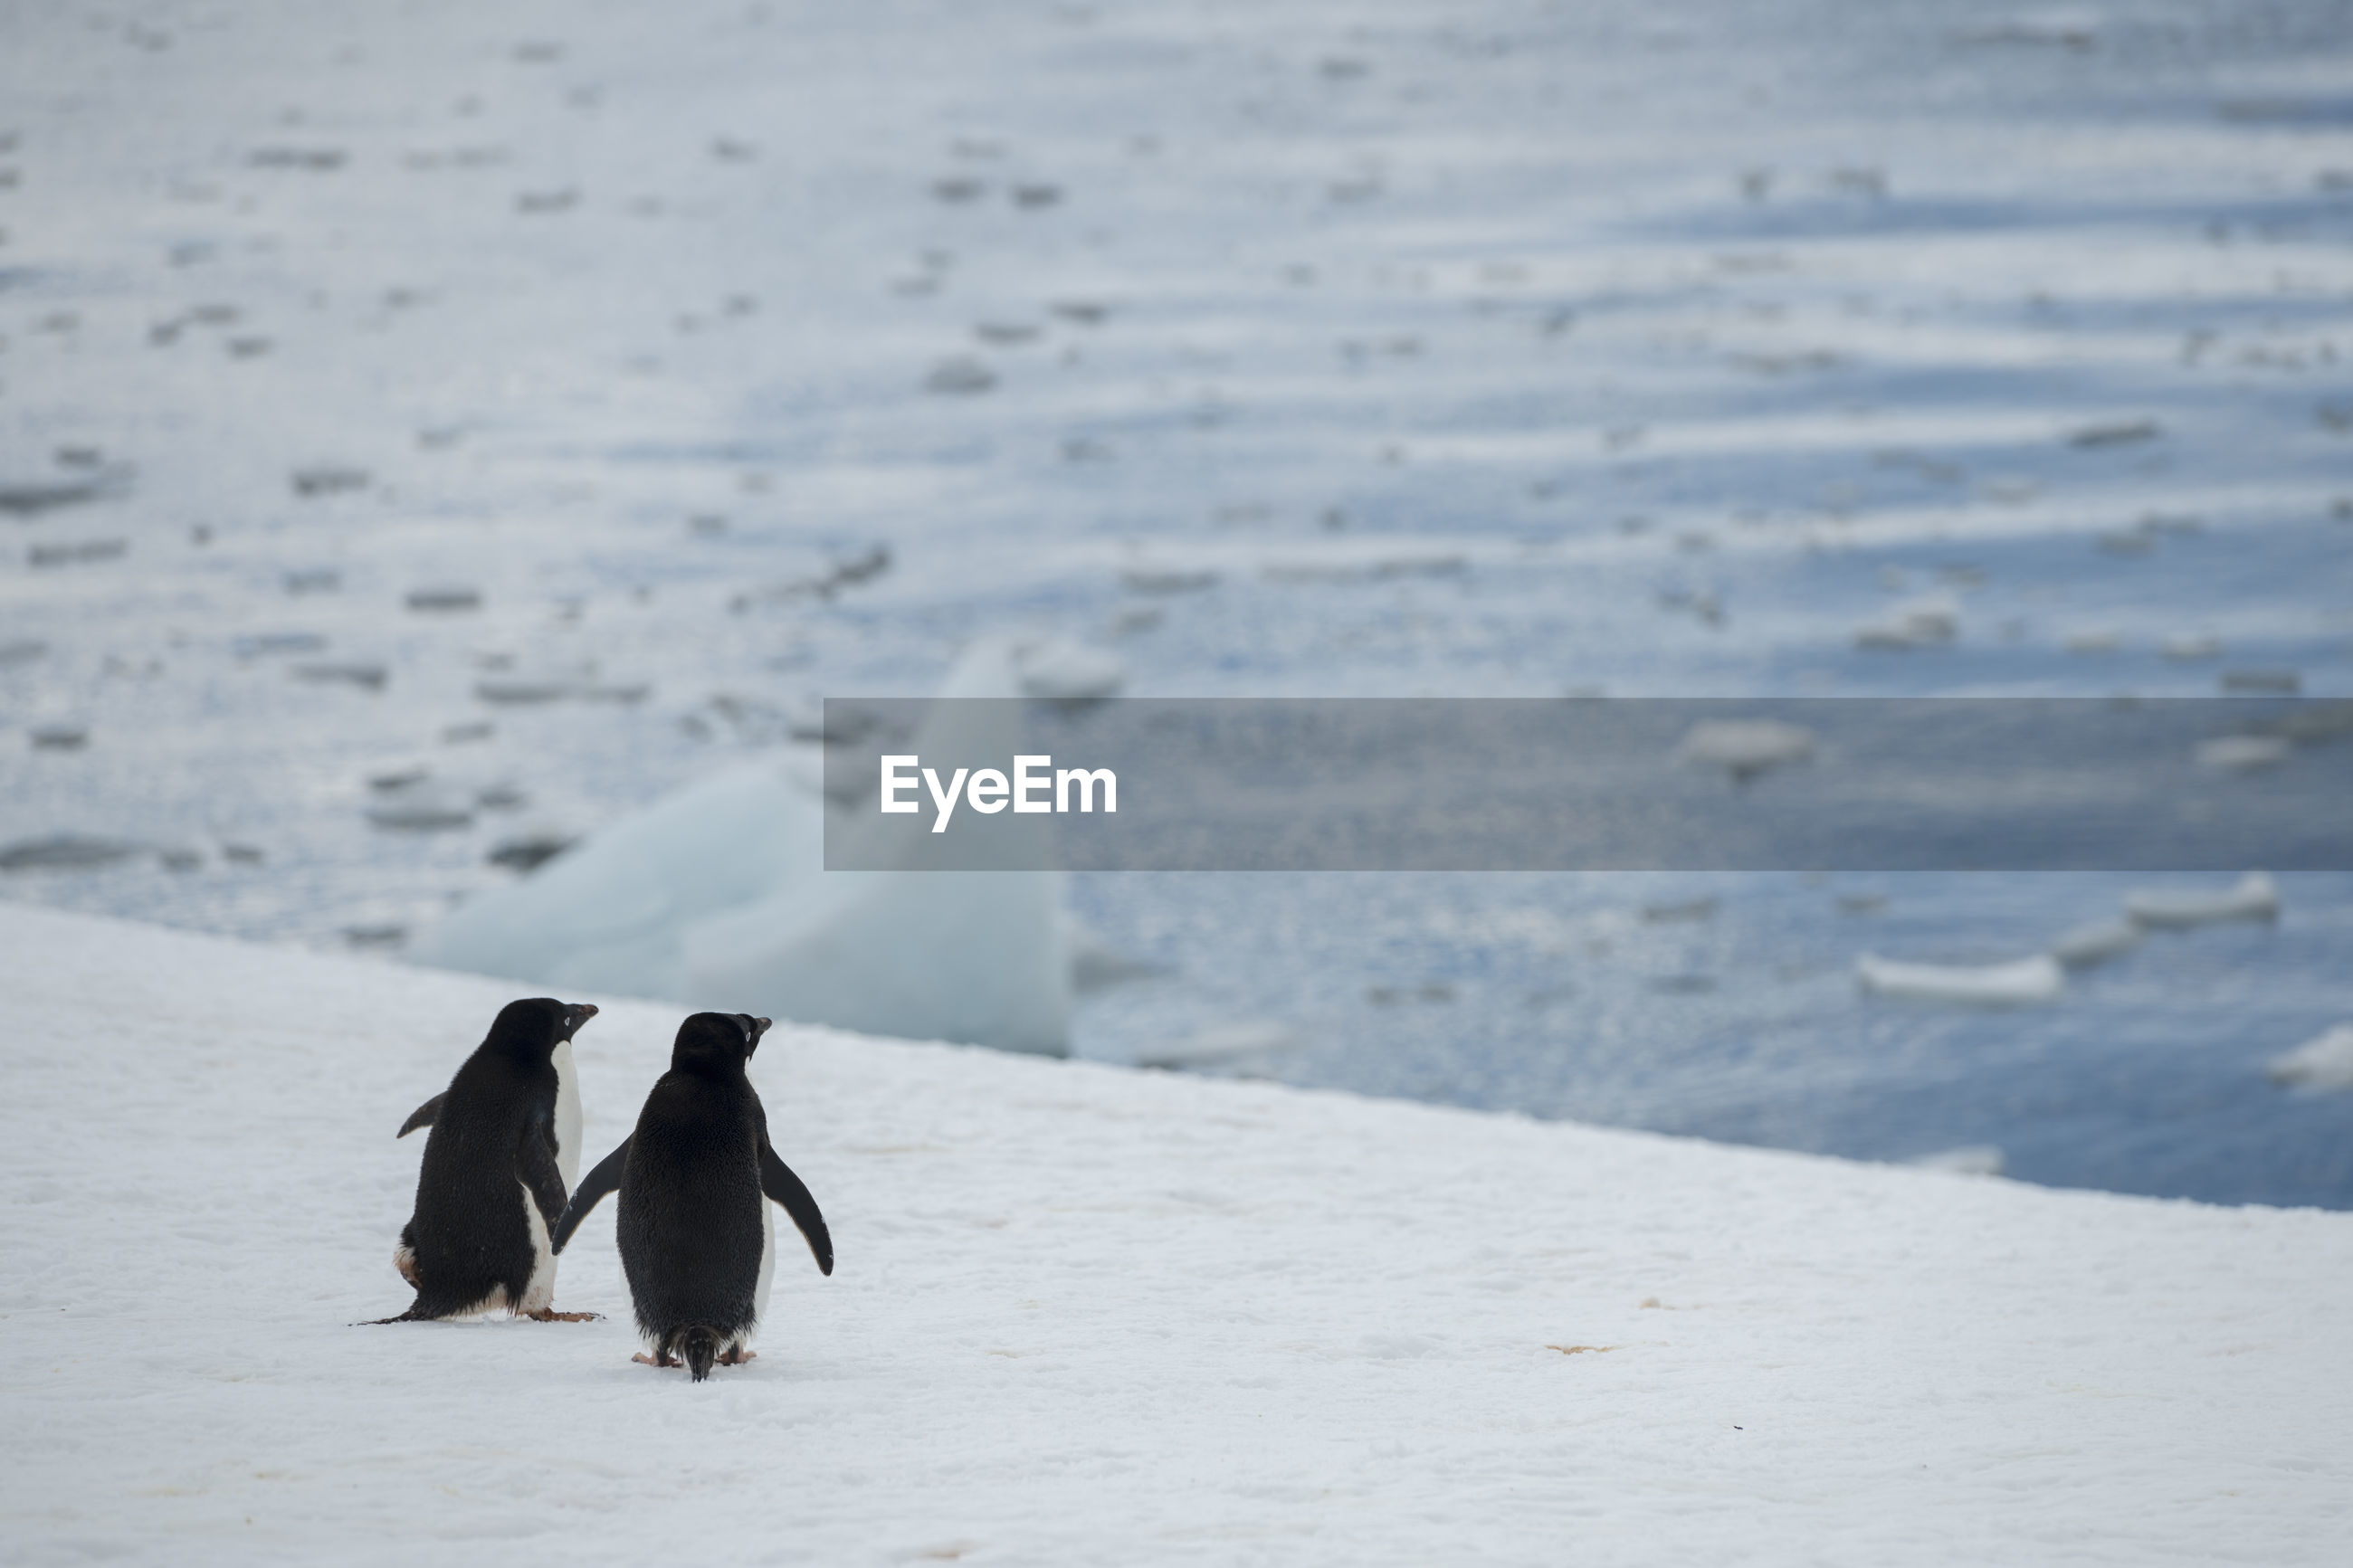 Adélie penguins in hope bay on trinity peninsula, the northernmost part of the antarctic peninsula.